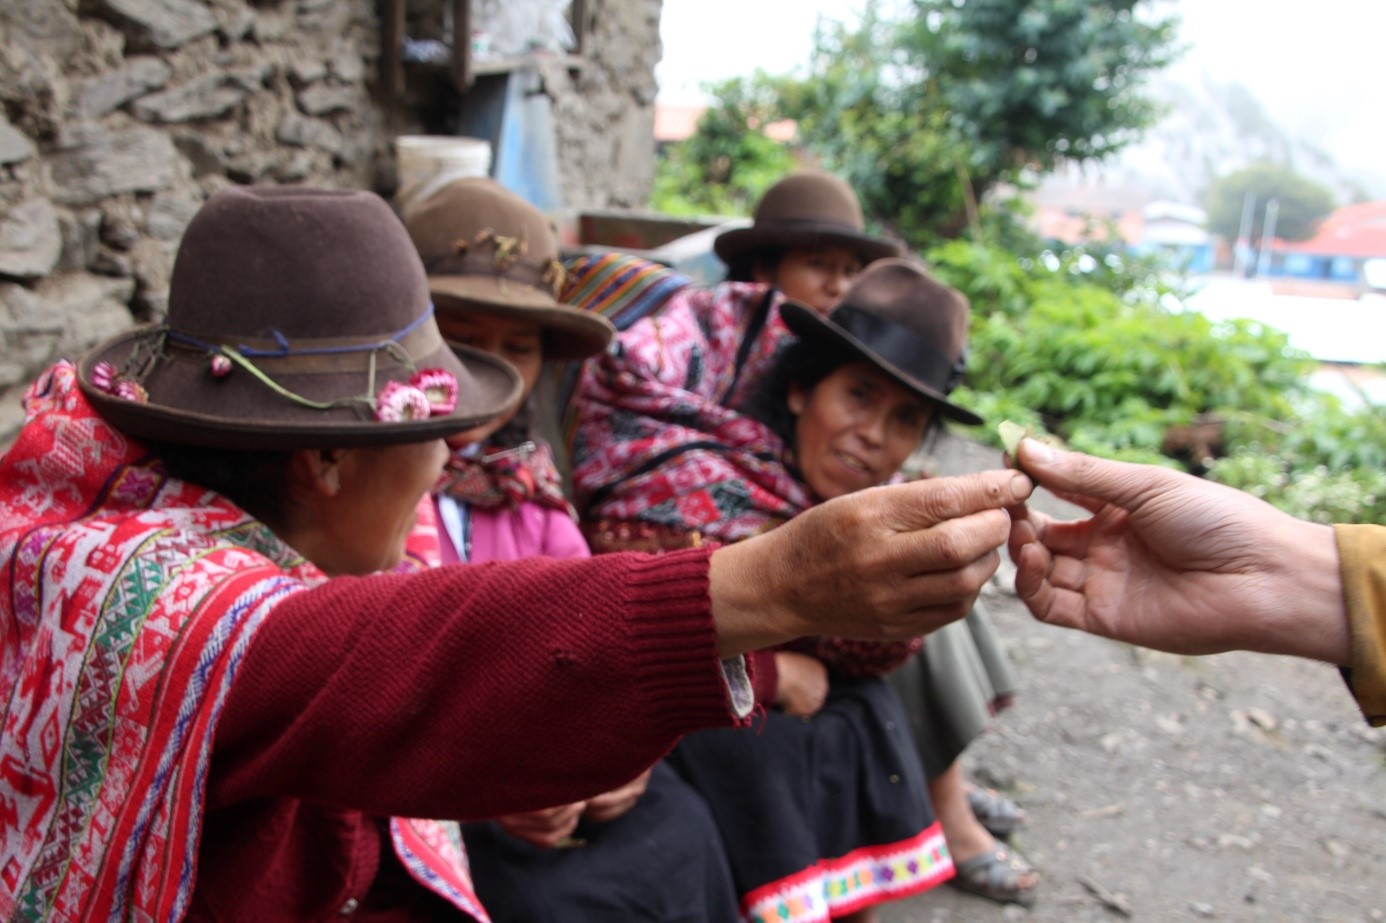 Communauté andine de Choquequancha, district de Lares, région de Cusco. Crédit photo : Victor Charruaud